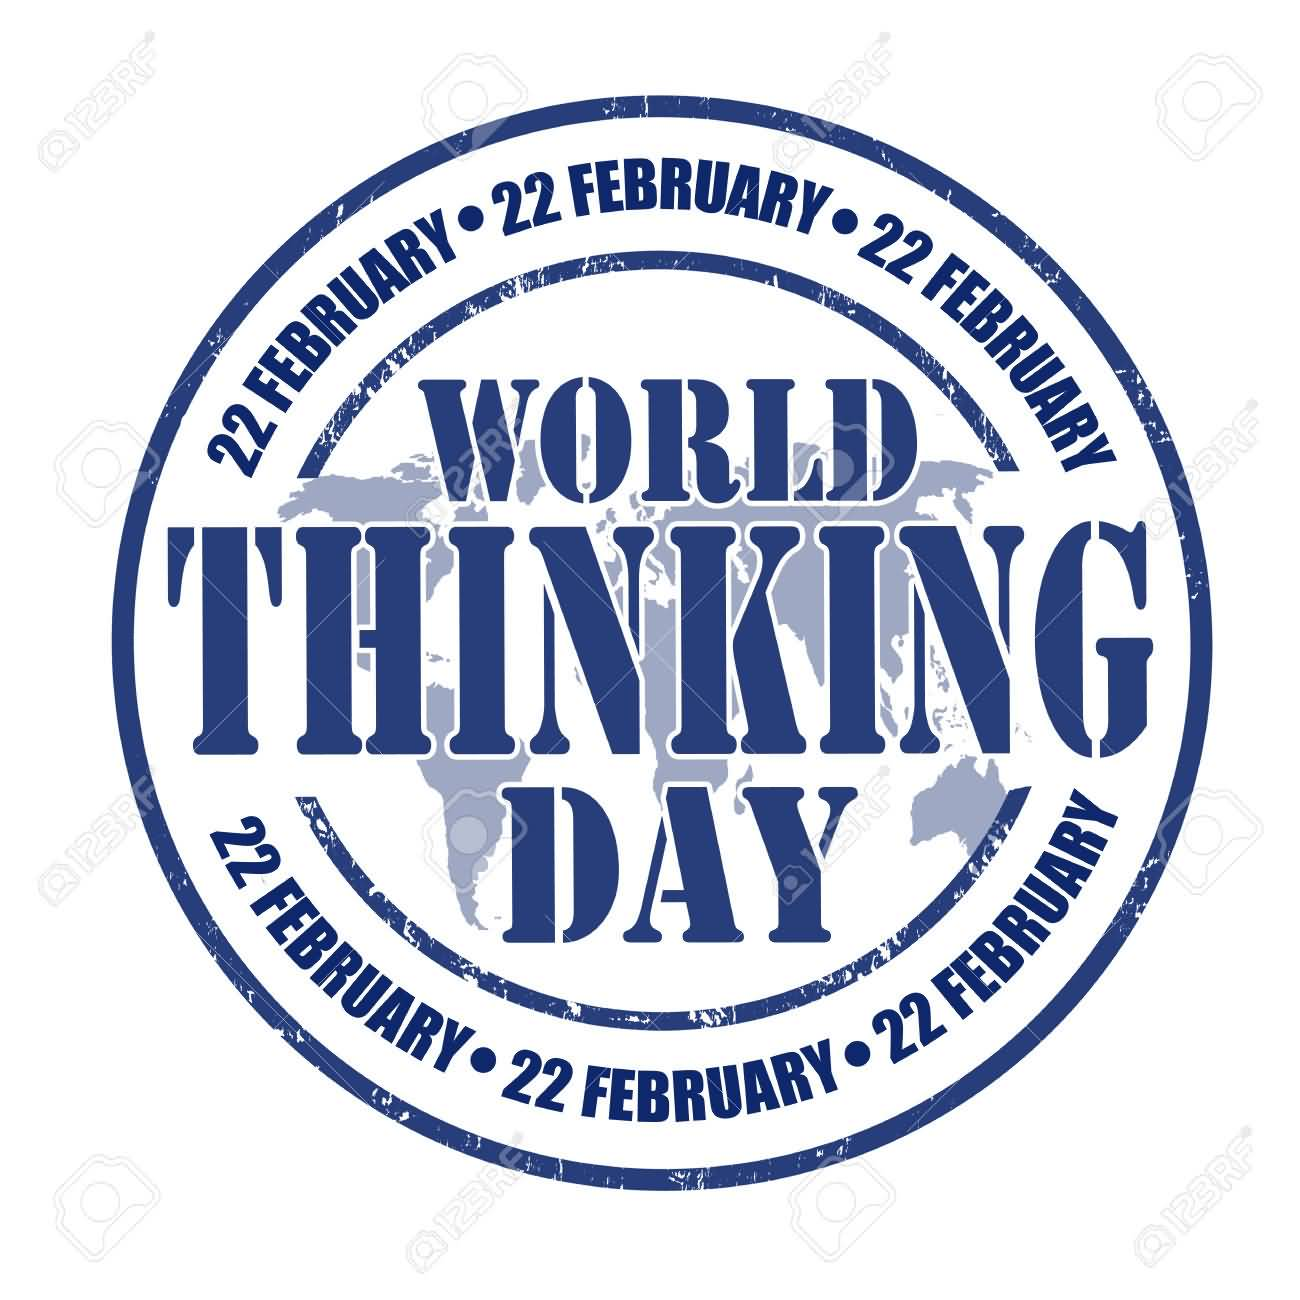 essays on world thinking day 1453 quotes from ralph waldo emerson: 'to be yourself in a world that is constantly trying to make you something else is the greatest accomplishment', 'for every minute you are angry you lose sixty seconds of happiness', and 'finish each day and be.